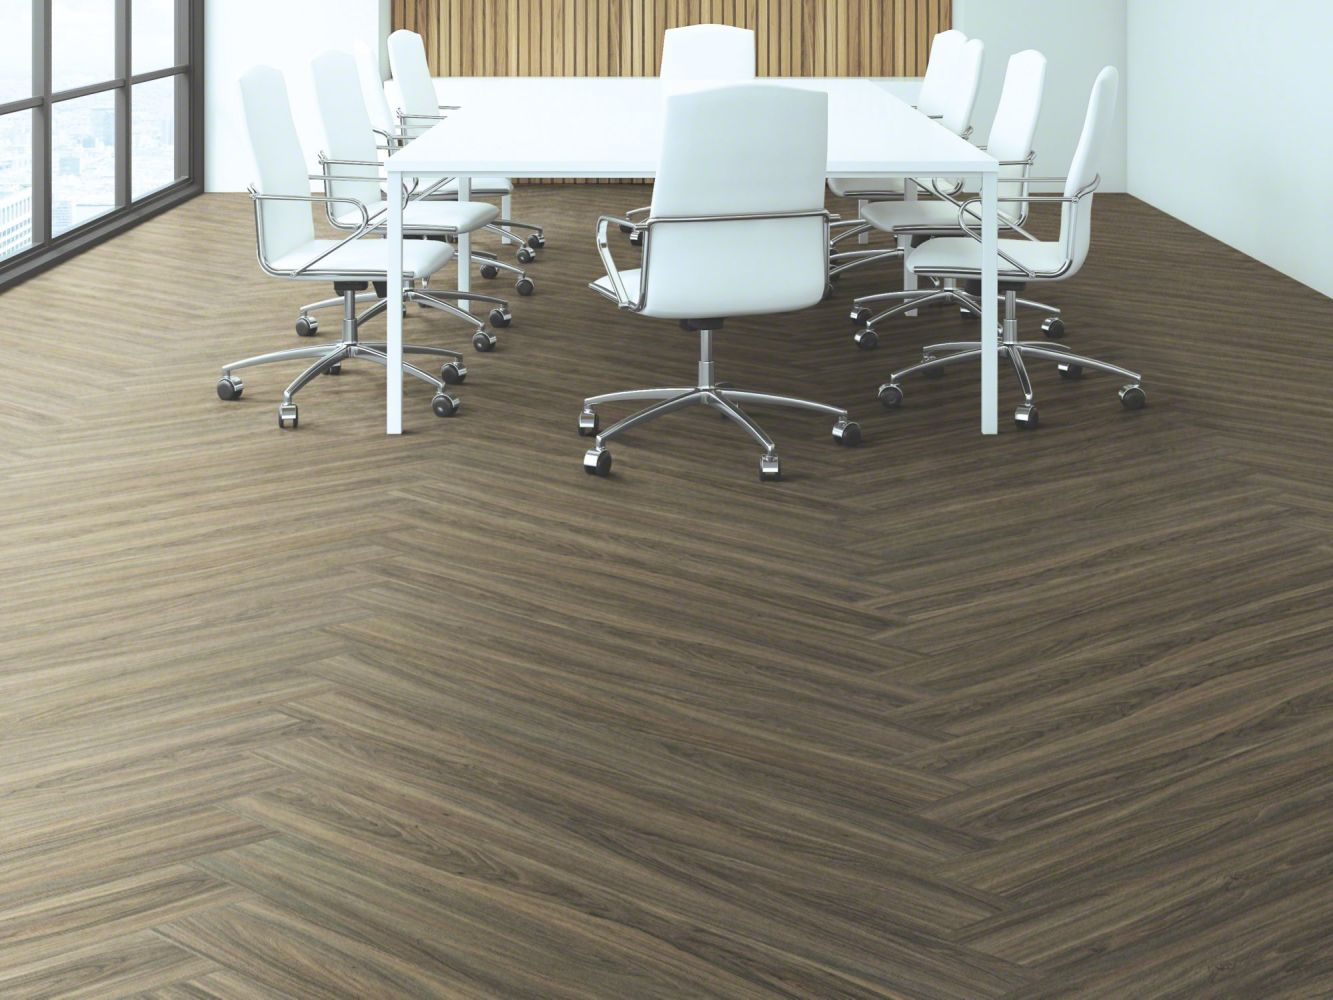 Shaw Floors Vinyl Residential Piancavallo Plus Cinnamon Wlanut 00150_HSS47